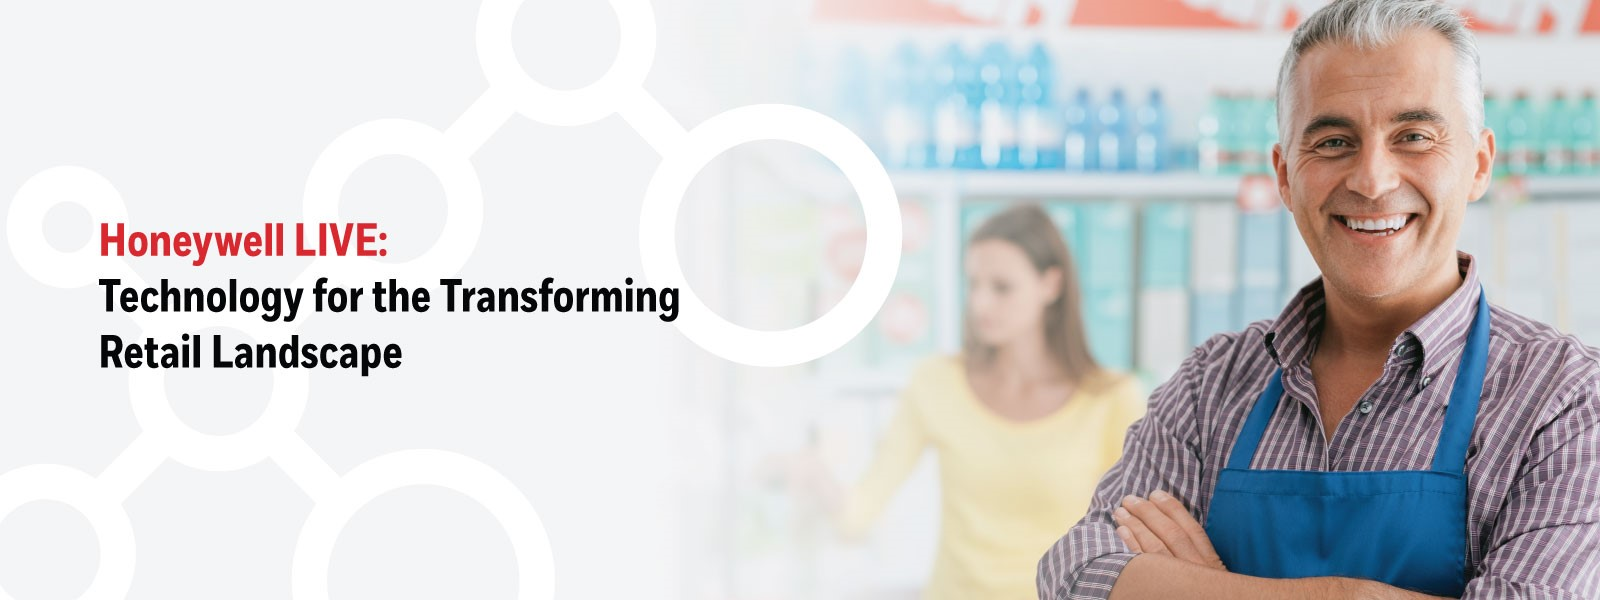 Technology for the Transforming Retail Landscape